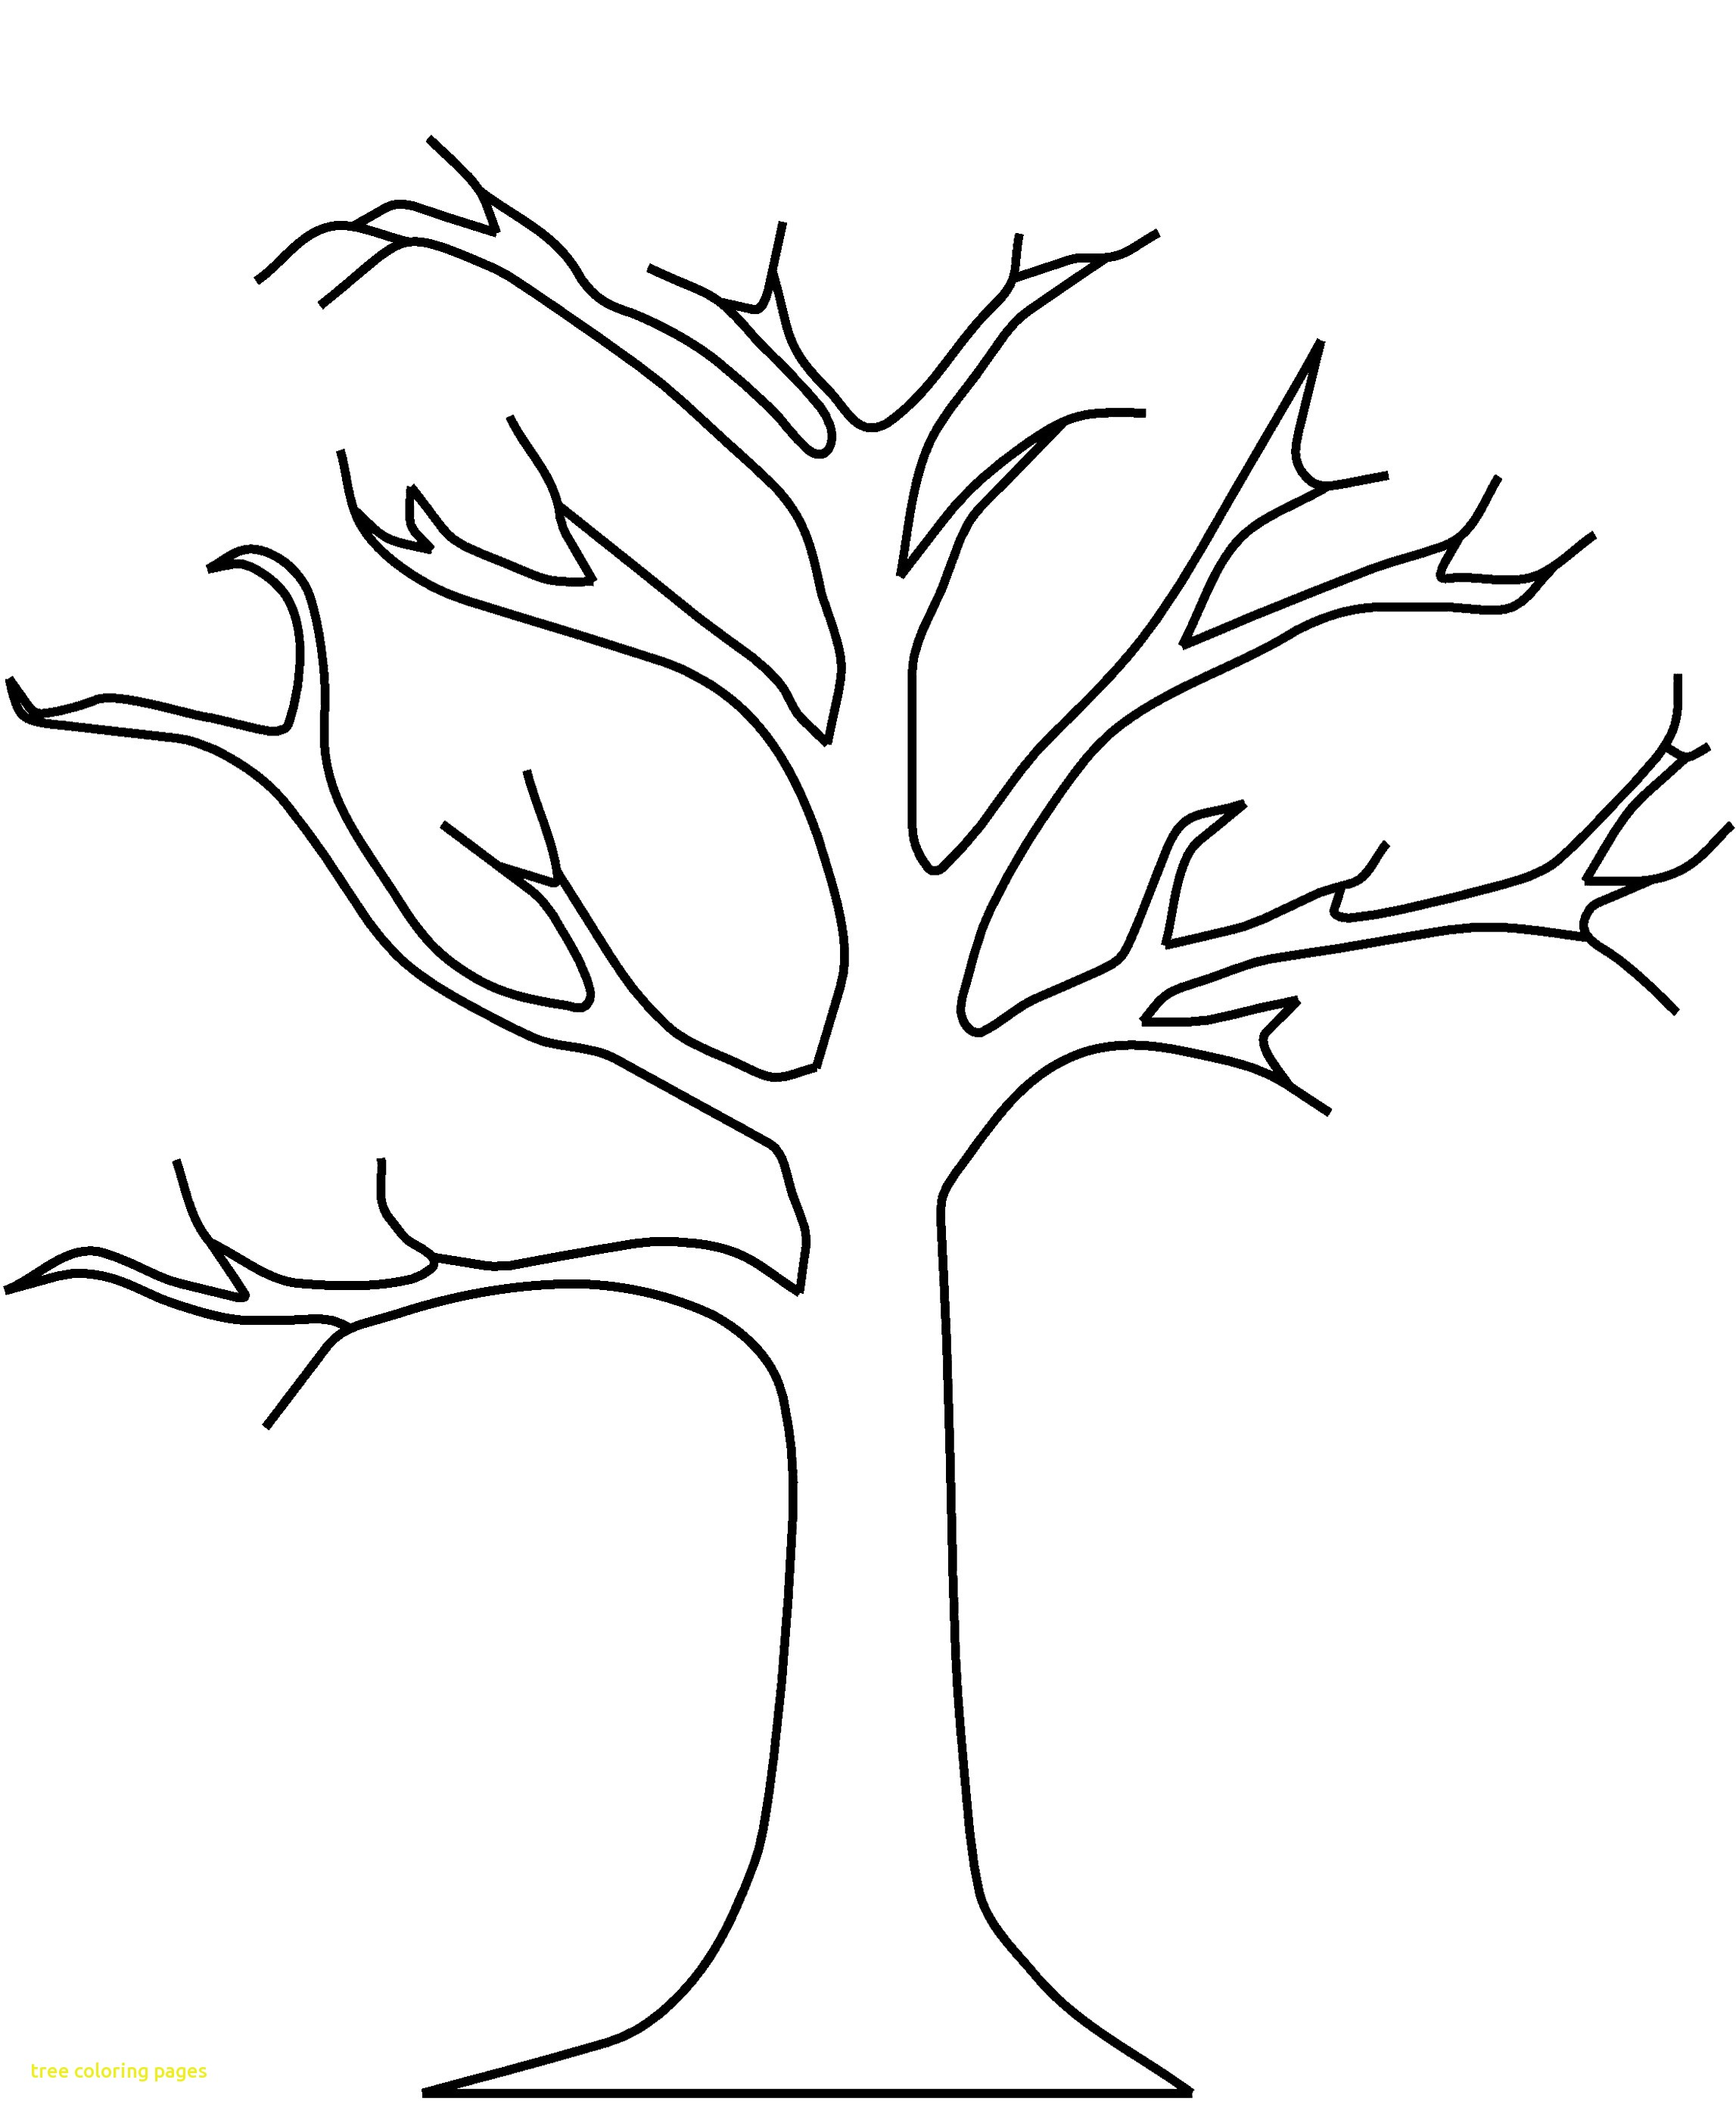 2294x2794 Tree Coloring Pages With Free Printable Tree Coloring Pages